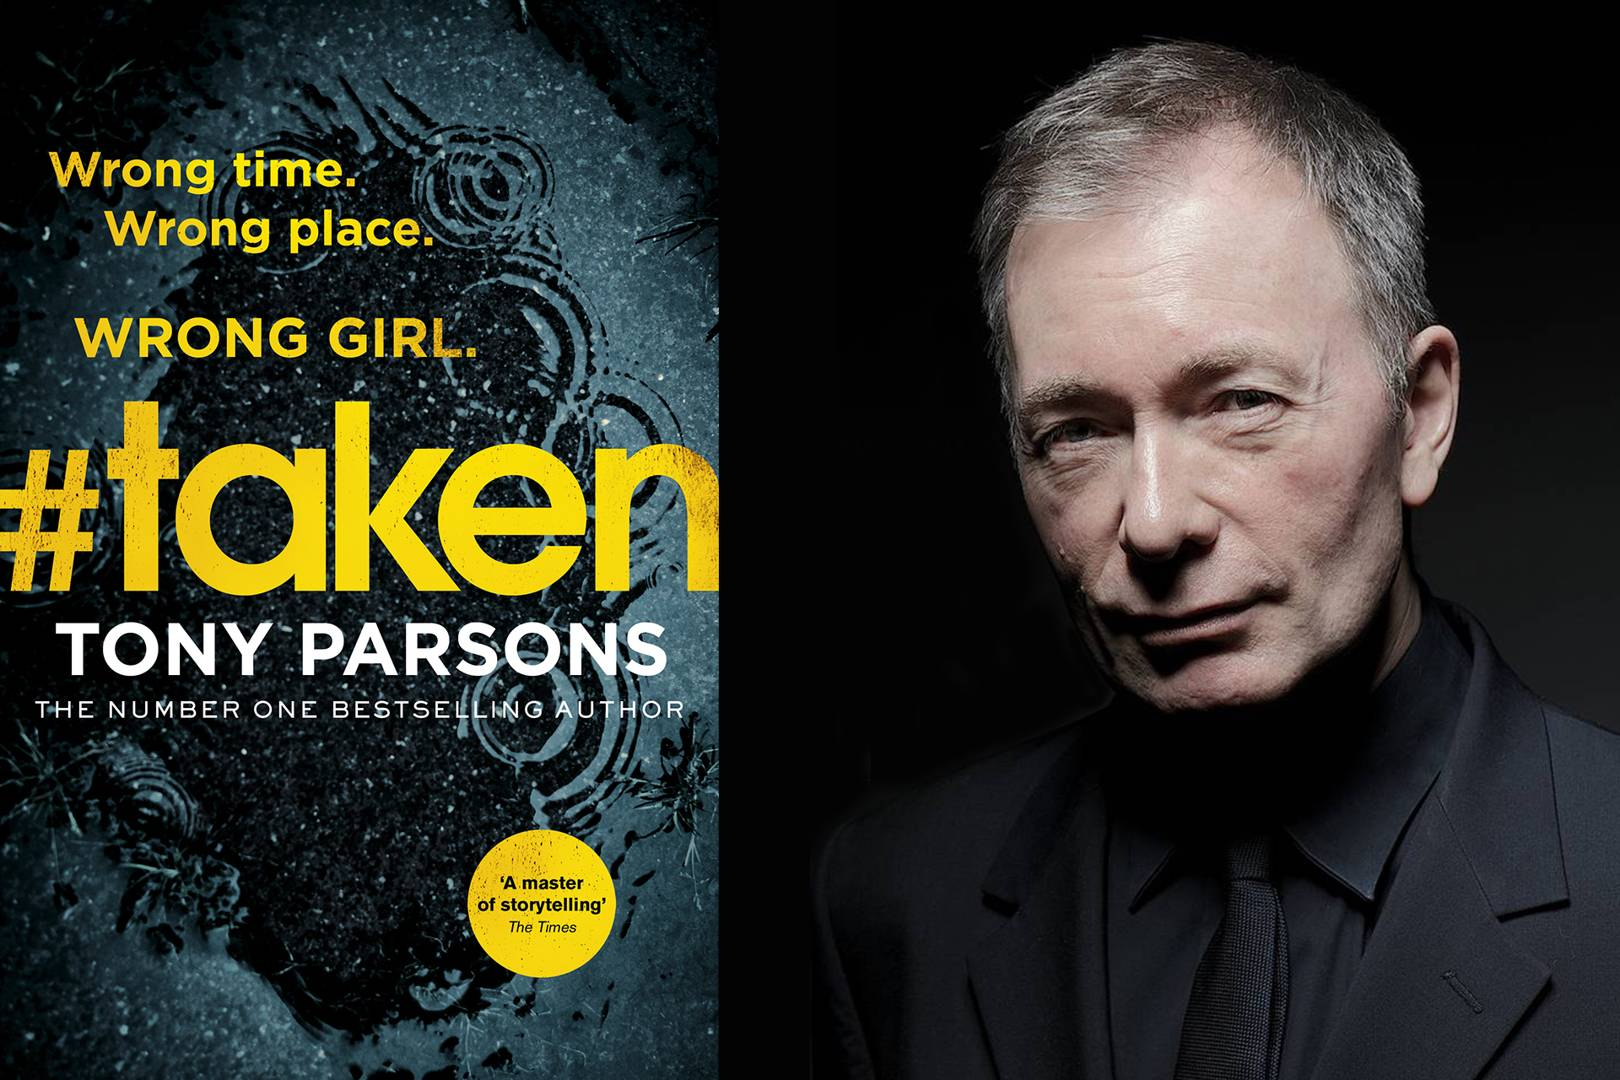 Exclusive: Read Tony Parsons' new book '#Taken' in its entirety